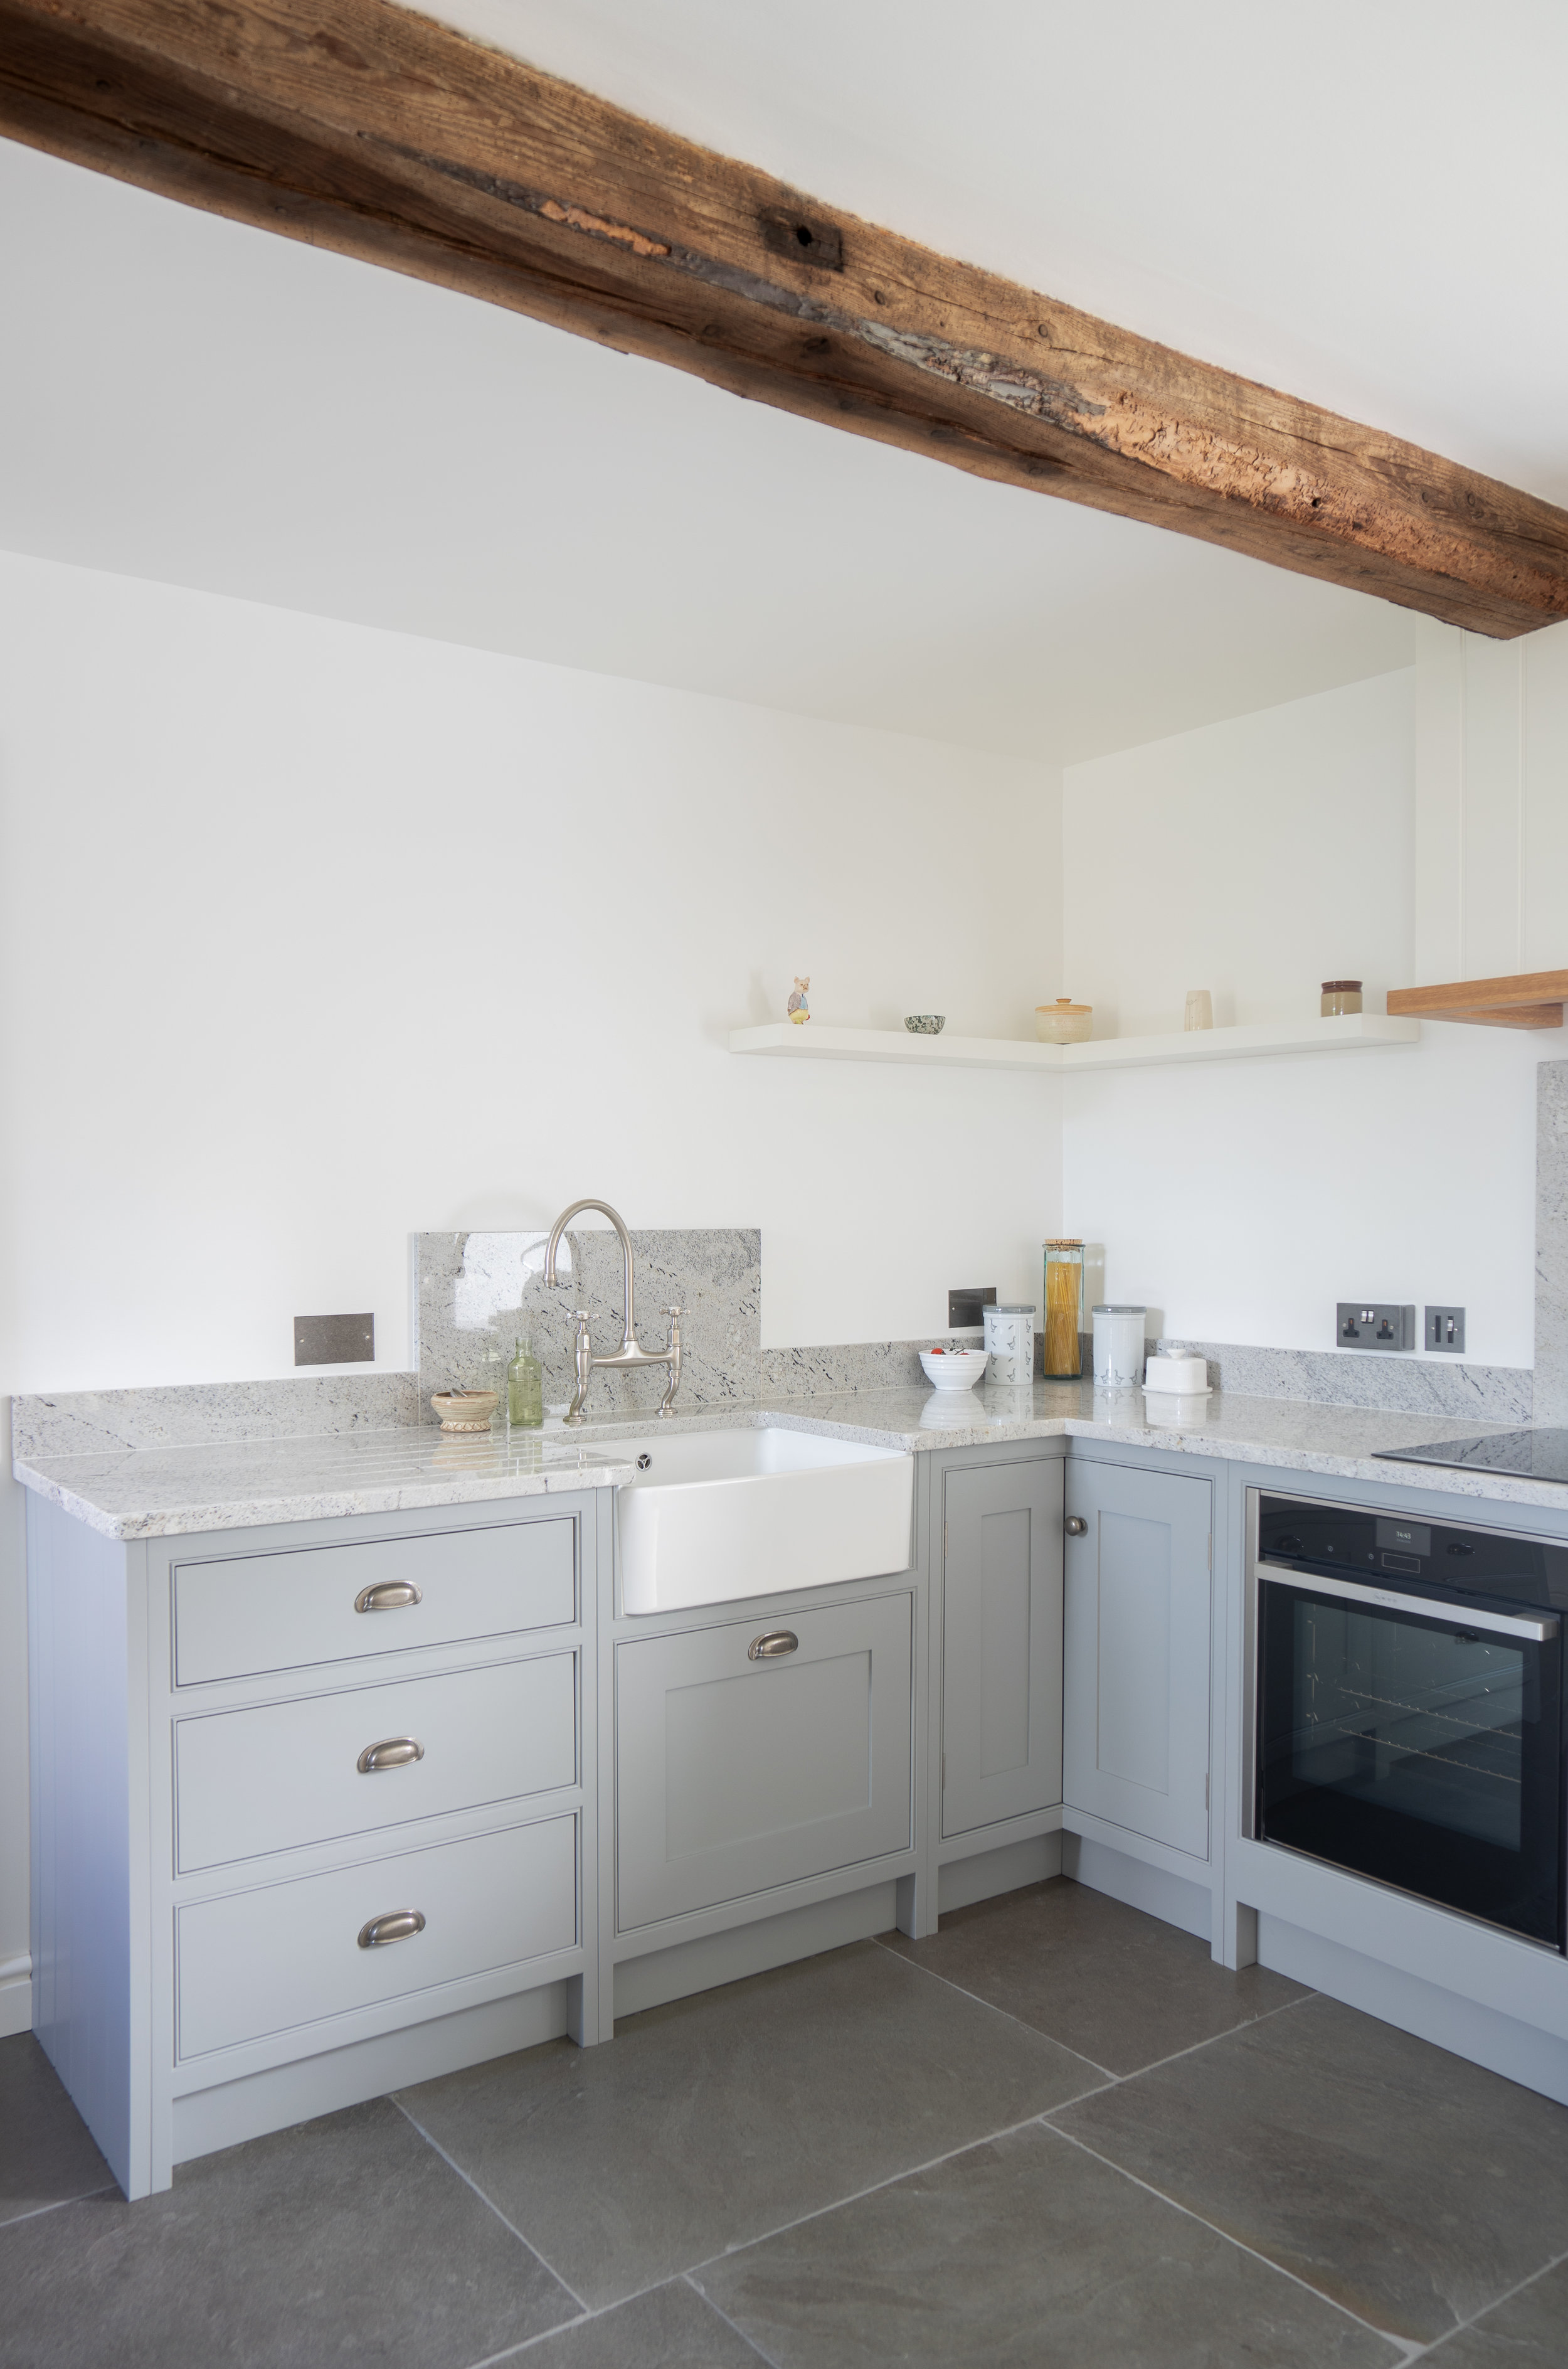 White Sink Grey Cabinets Built in cooker.jpg